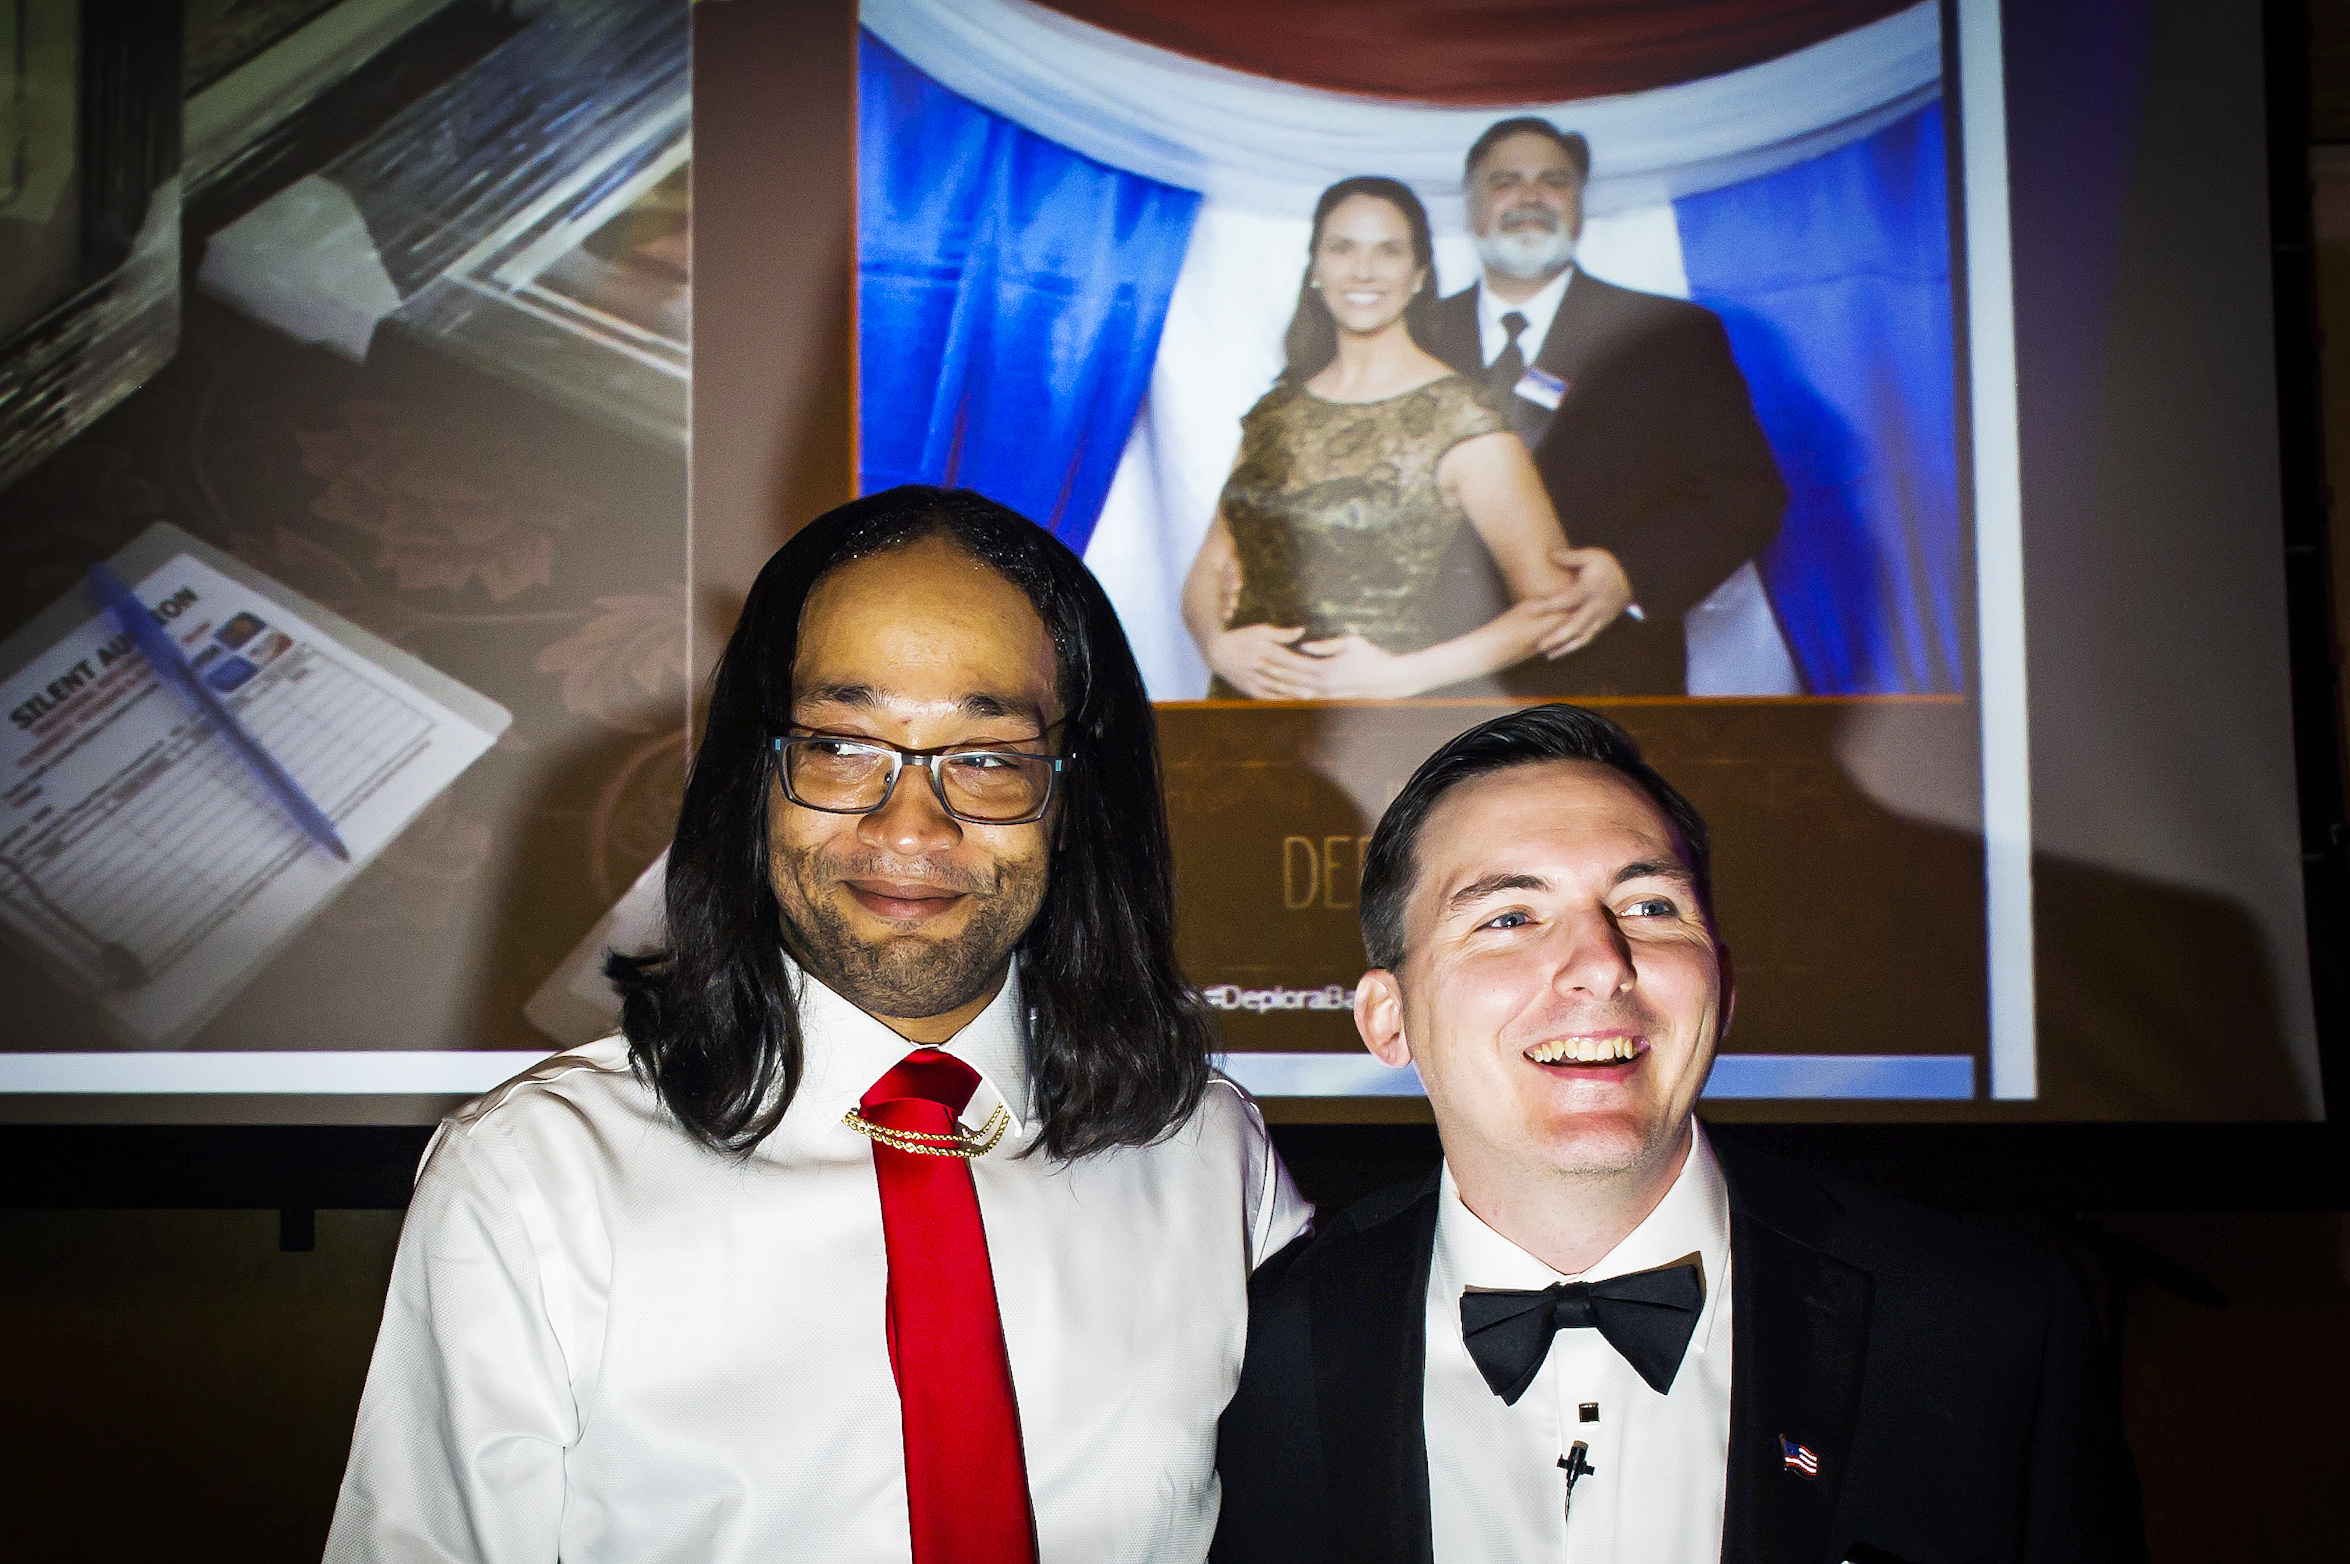 Gays for Trump President Peter Boykin (right) and his husband hosted the Inaugural Deploraball at the Bolger Center in Potomac, Maryland on January 20, 2017.